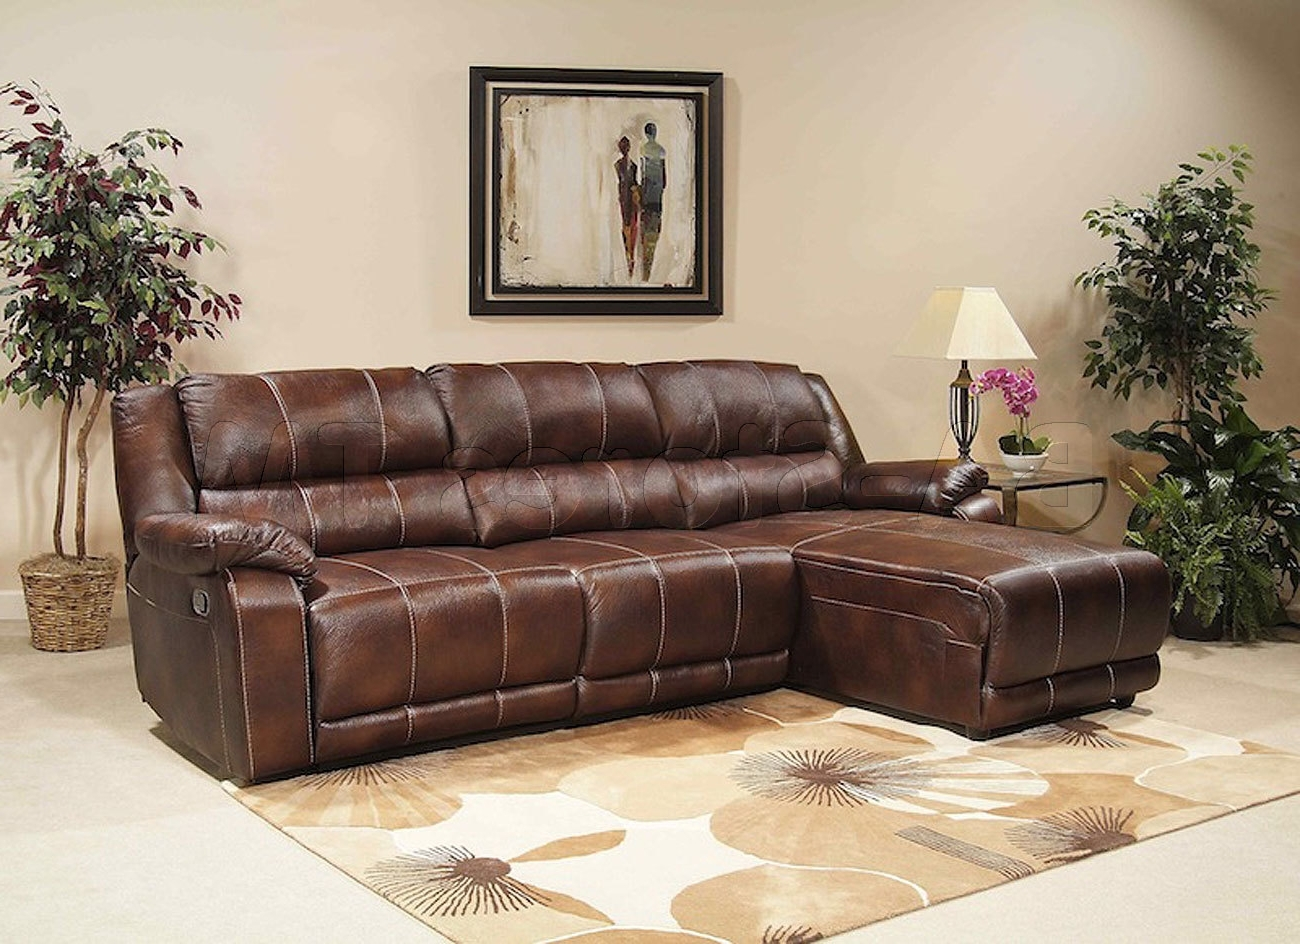 Fashionable Sectional Sofa Design: Affordabale Sectional Reclining Sofa With Inside Couches With Chaise And Recliner (View 3 of 15)